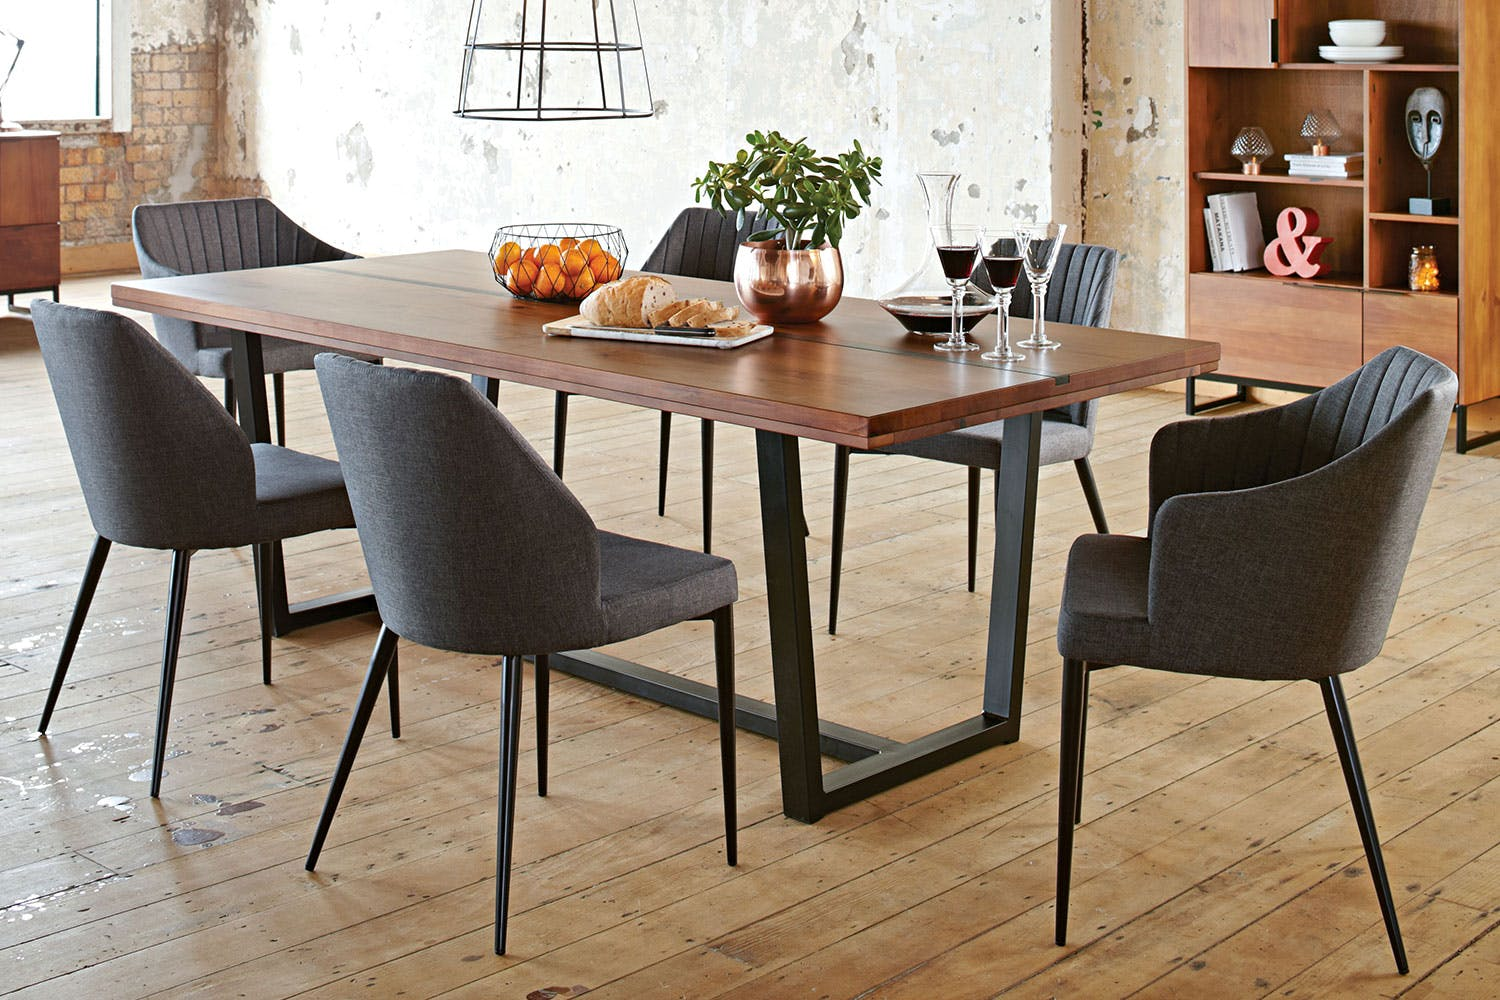 Excellent Harveys Dining Room Furniture Ideas Best Image Engine